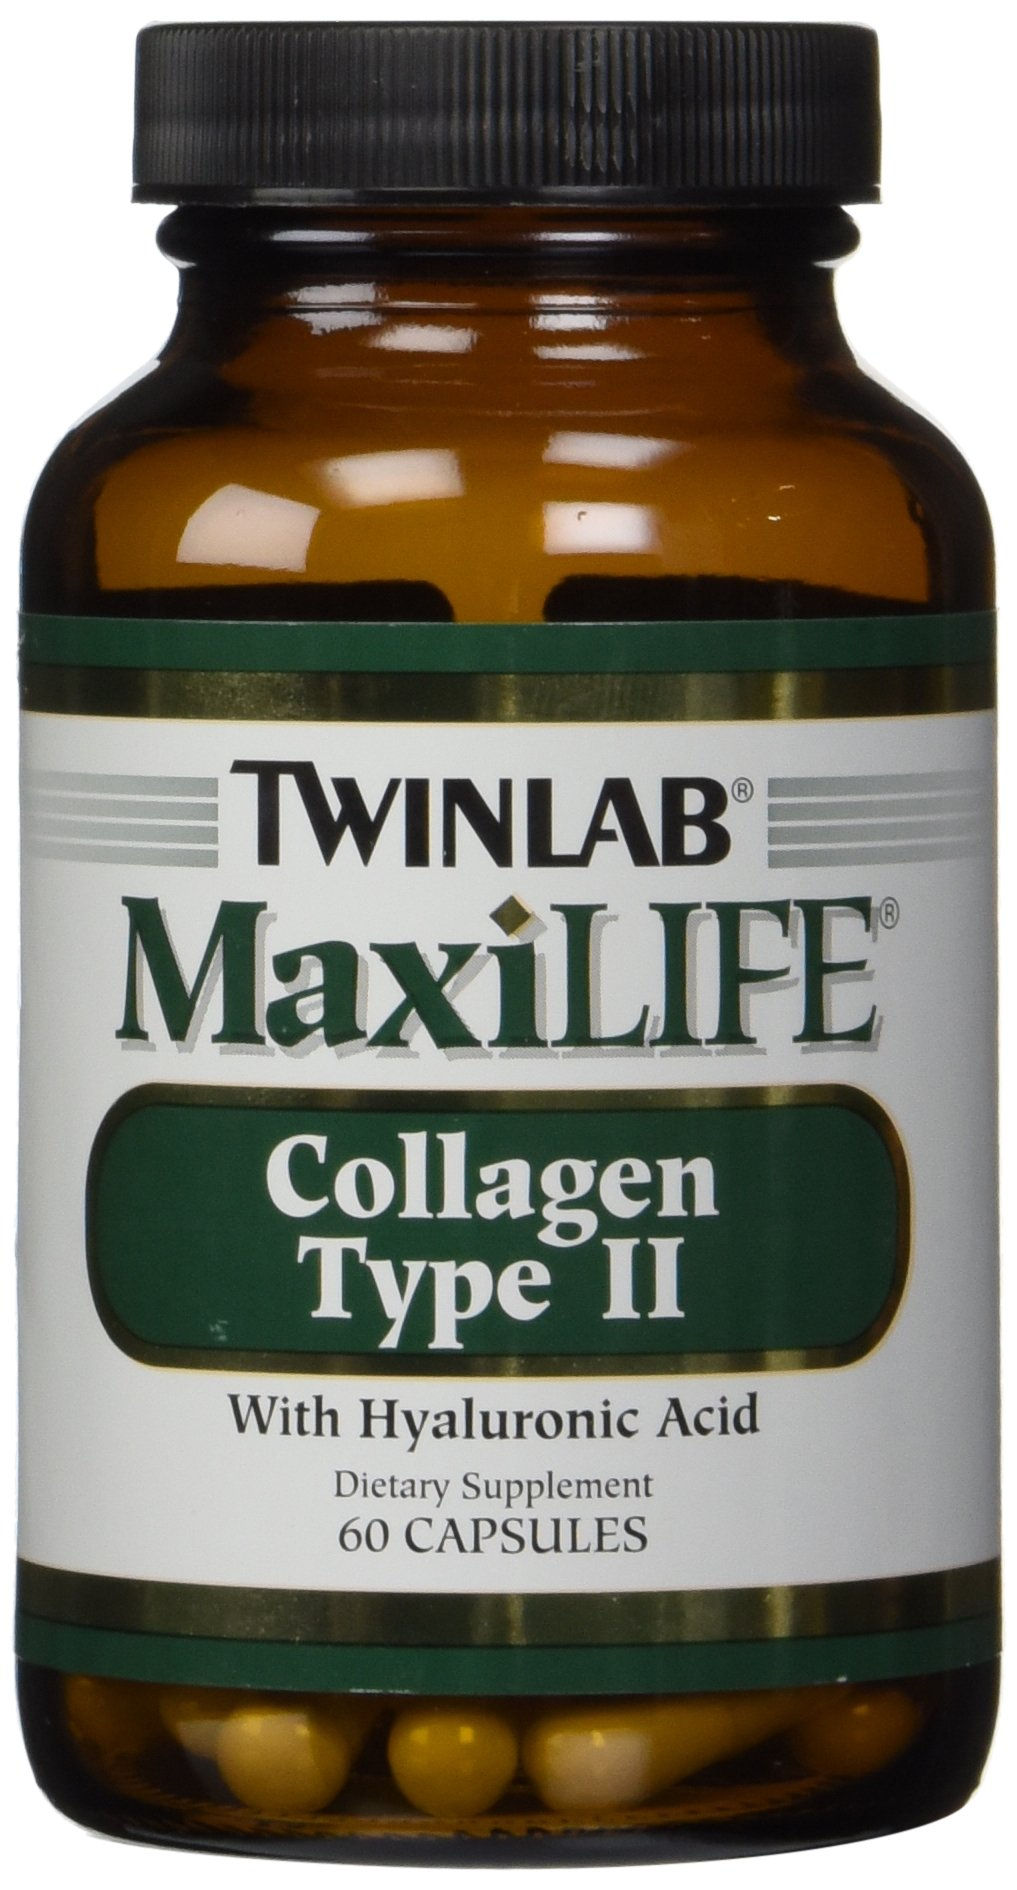 Twinlab MaxiLife Collagen Type II with Hyaluronic Acid, 60 Capsules